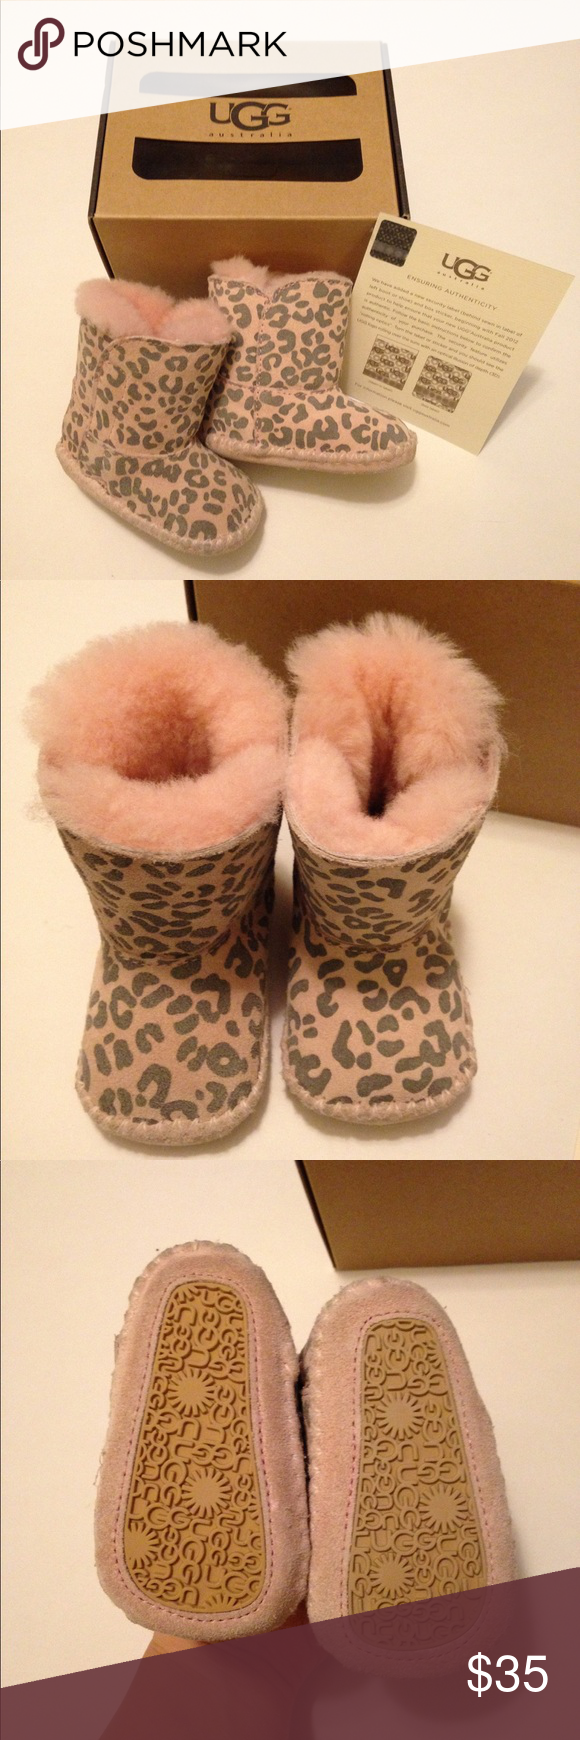 89111452252 Infant UGG Booties Infant Cassie Leopard pink UGG boots, size 0/1 XS ...